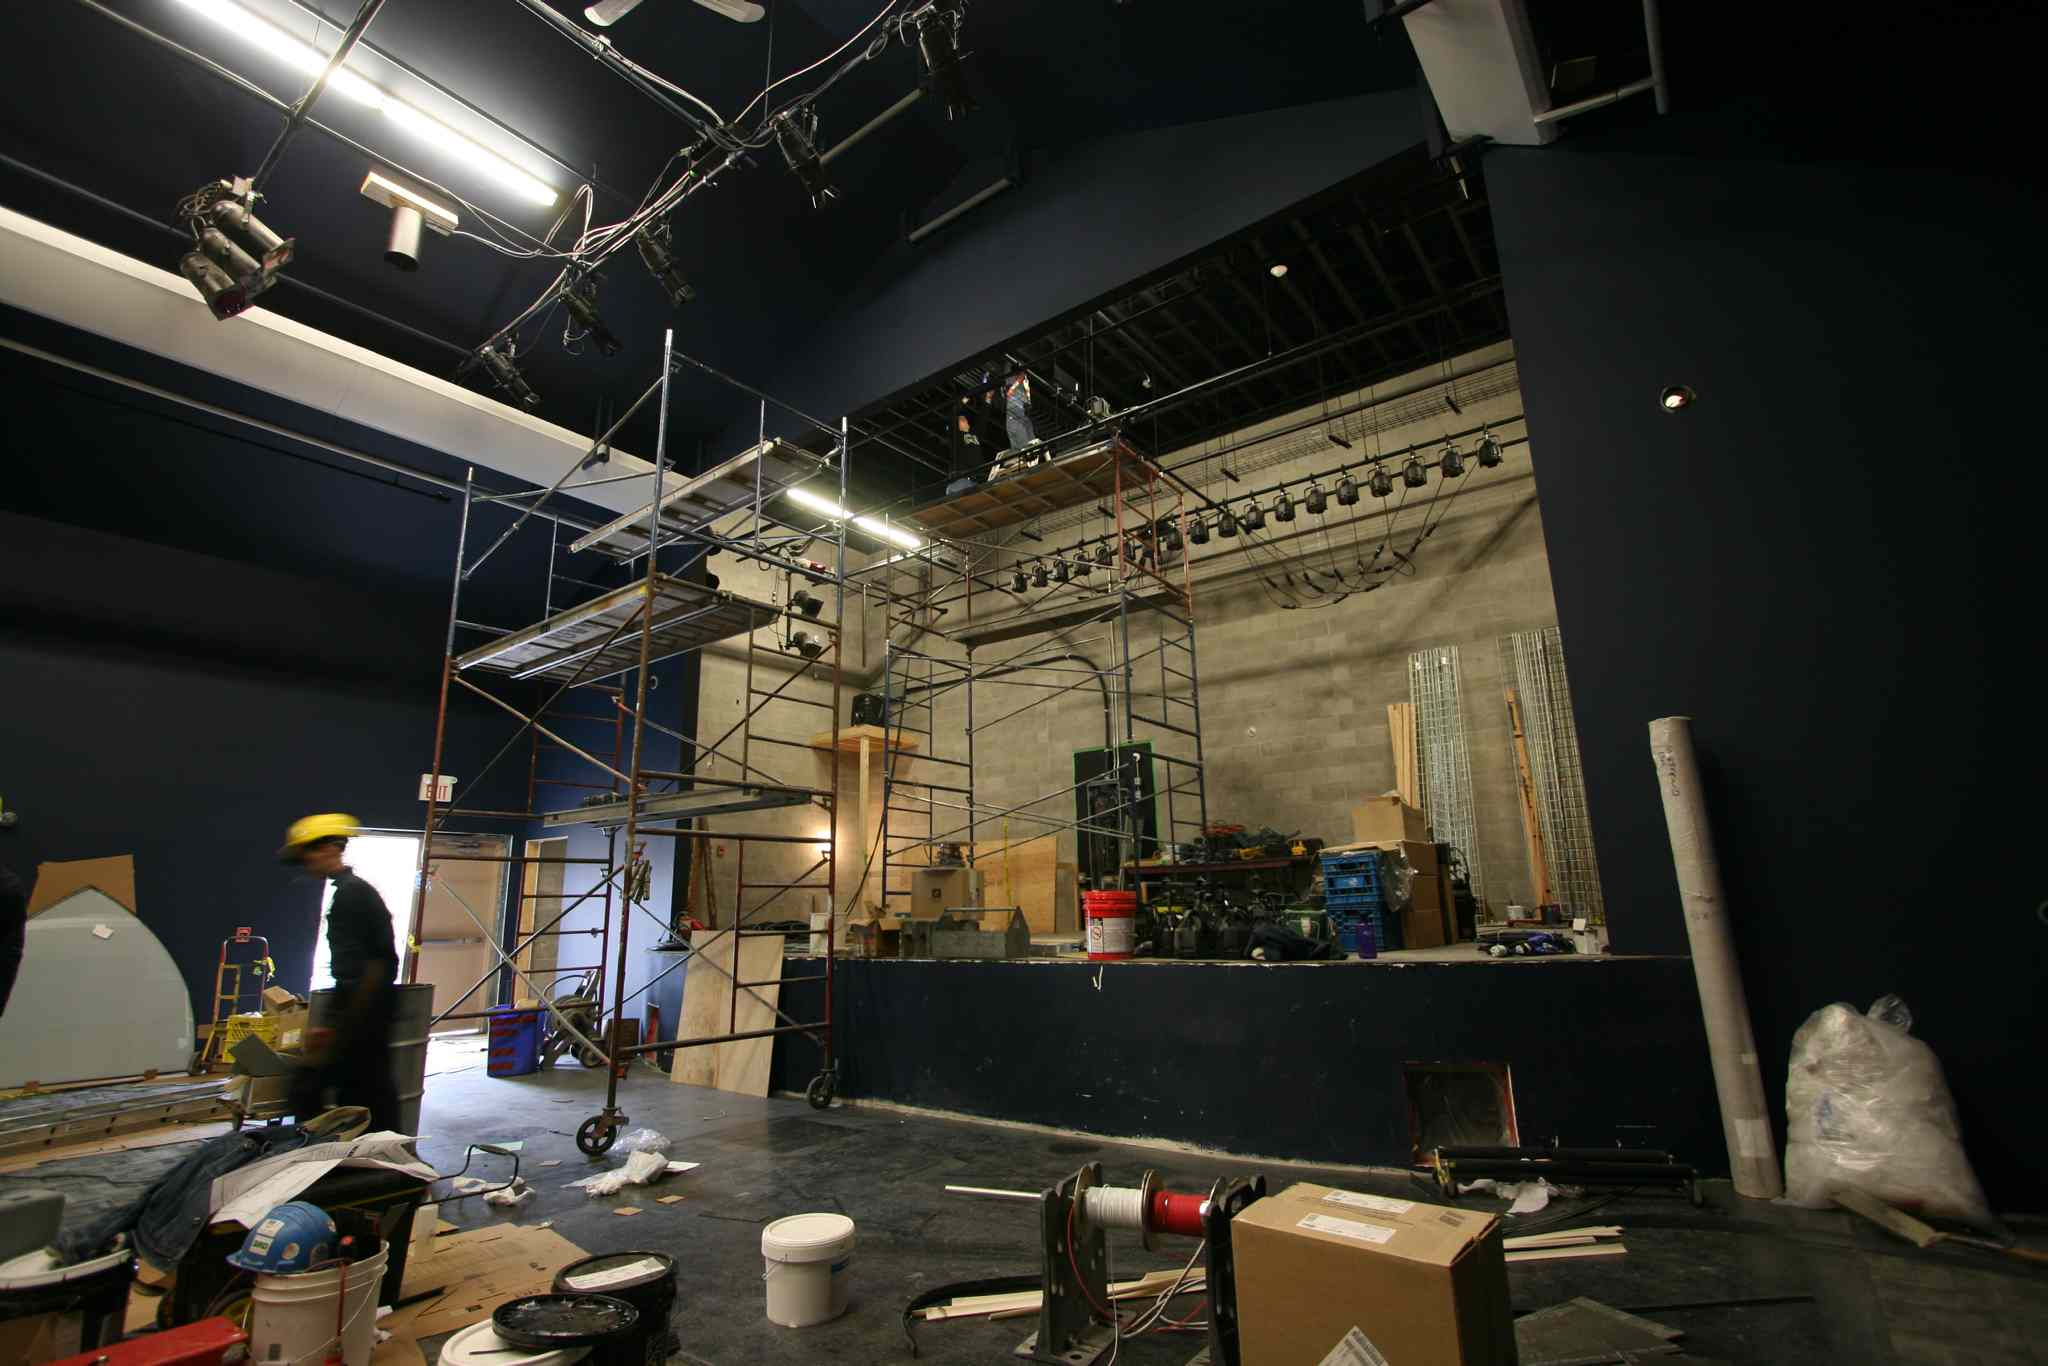 The stage under renovation. (Nicholas Friesen photo)